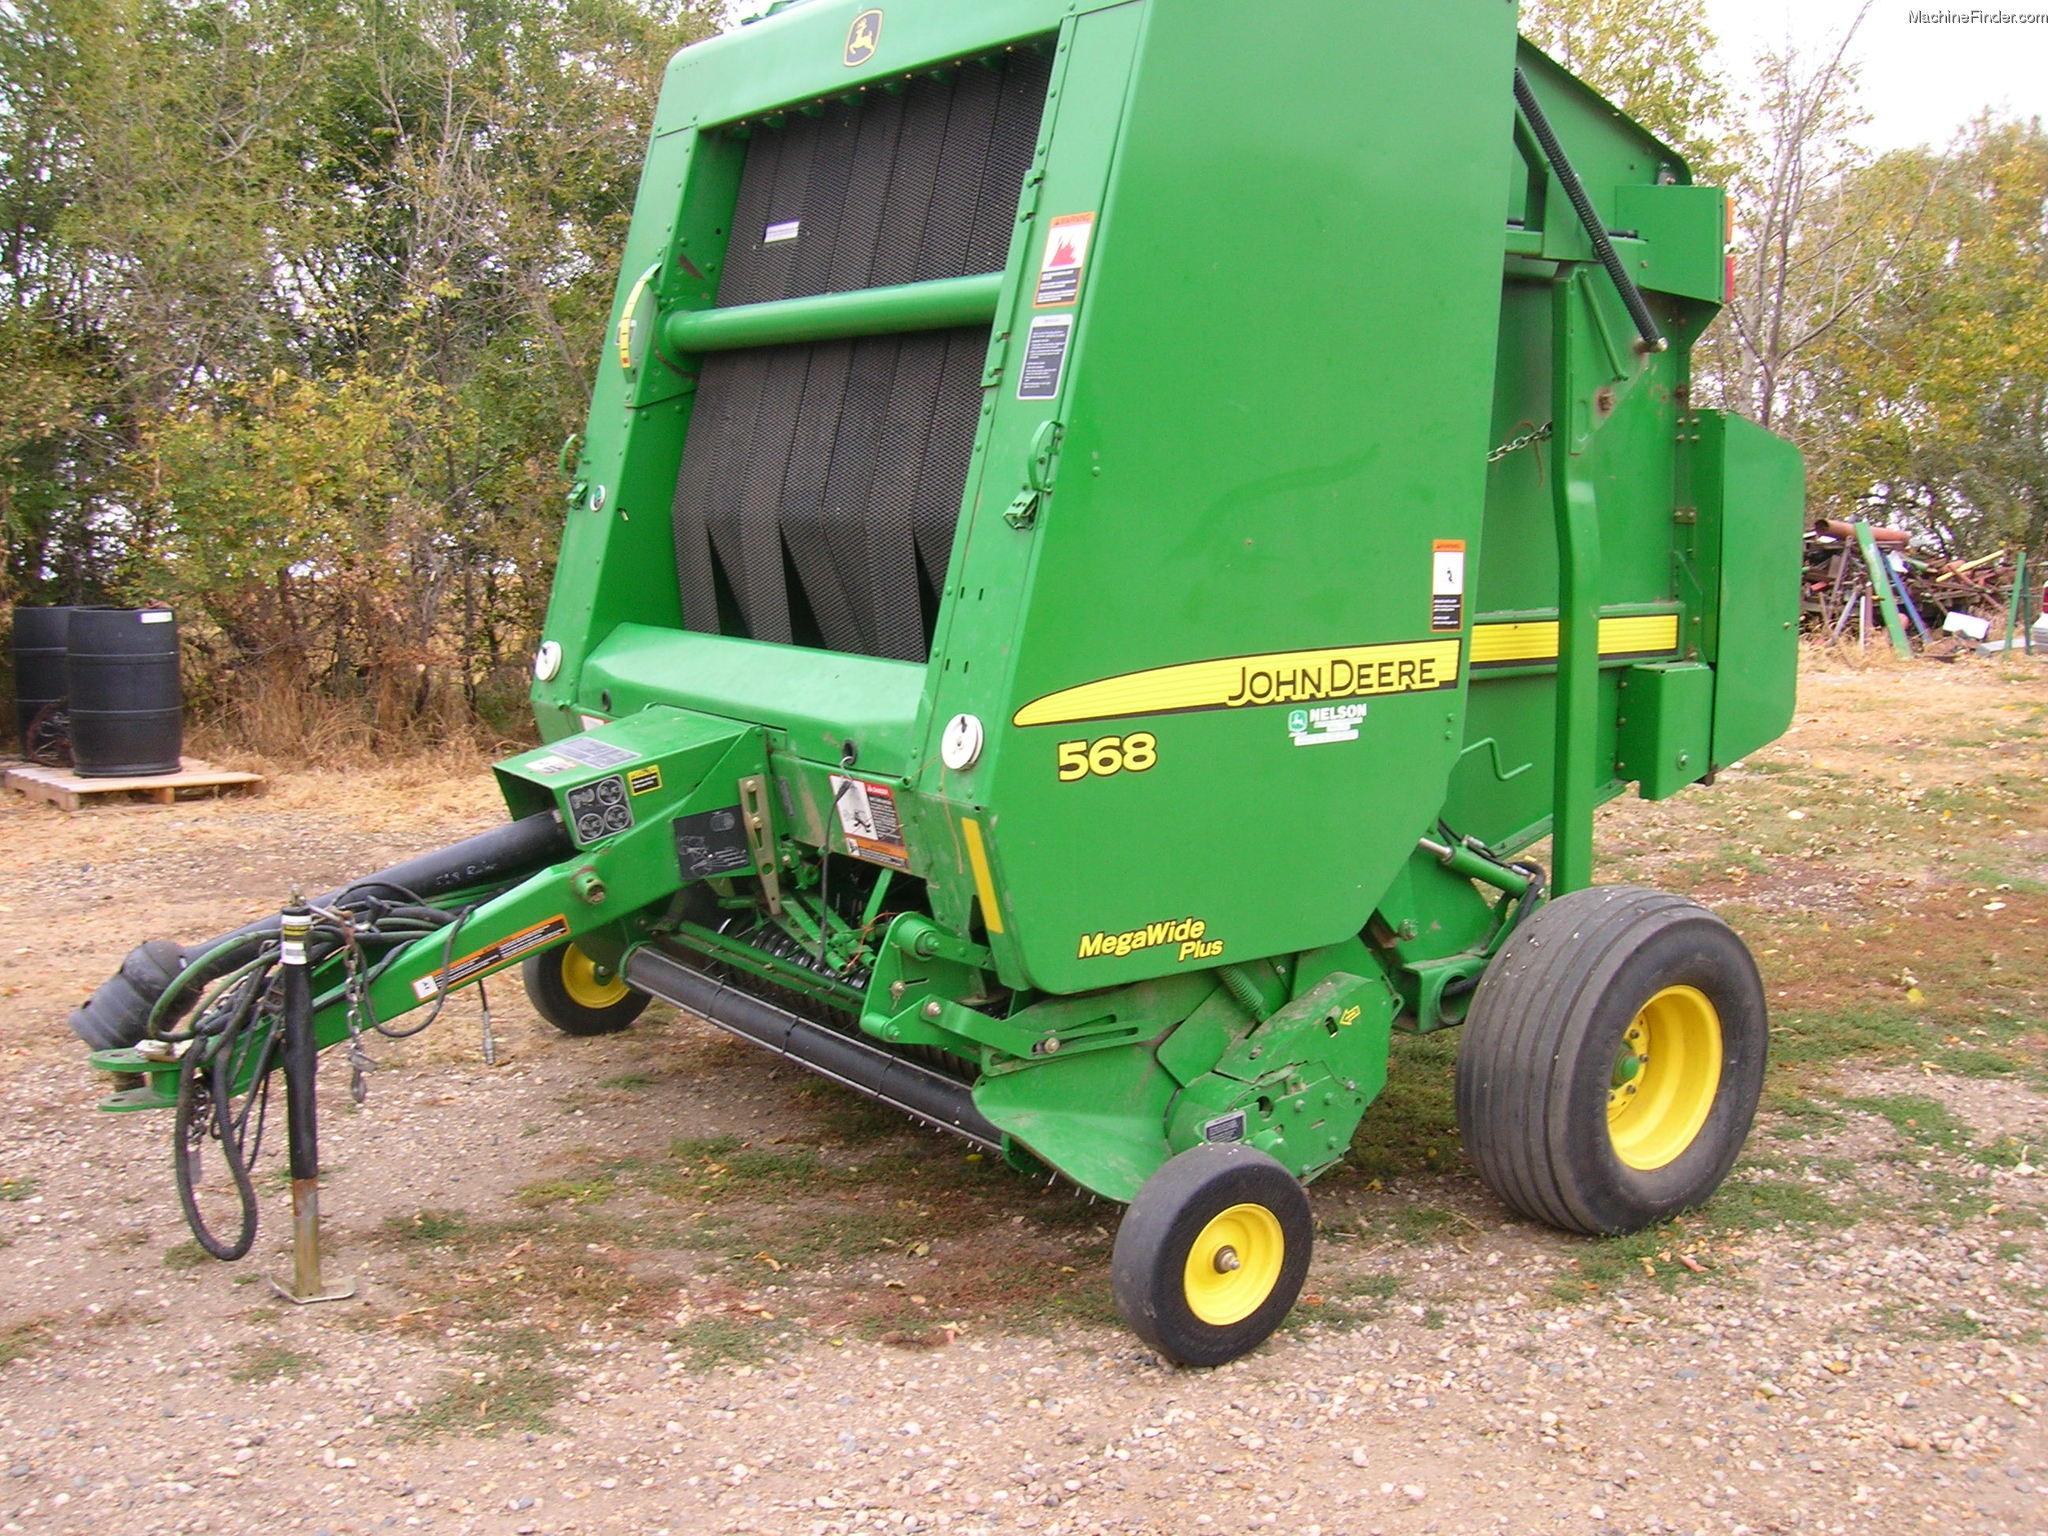 the hay baler problem